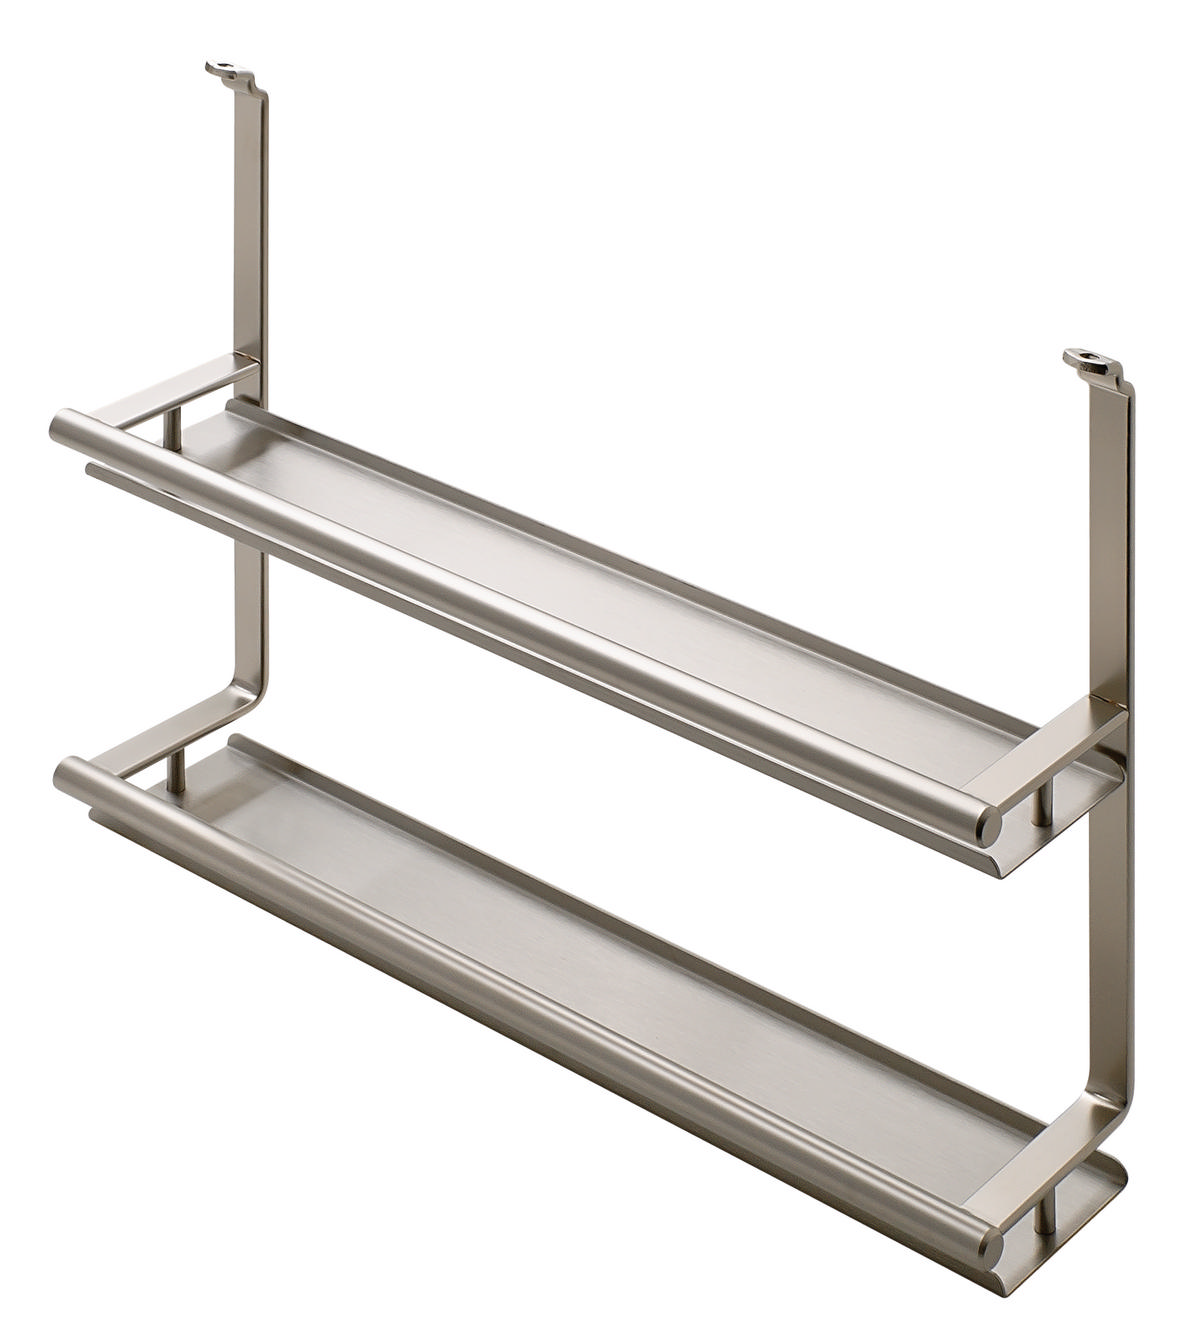 Price Kitchen Cabinets Hafele 521 61 625 Spice Rack Stainless Nickel